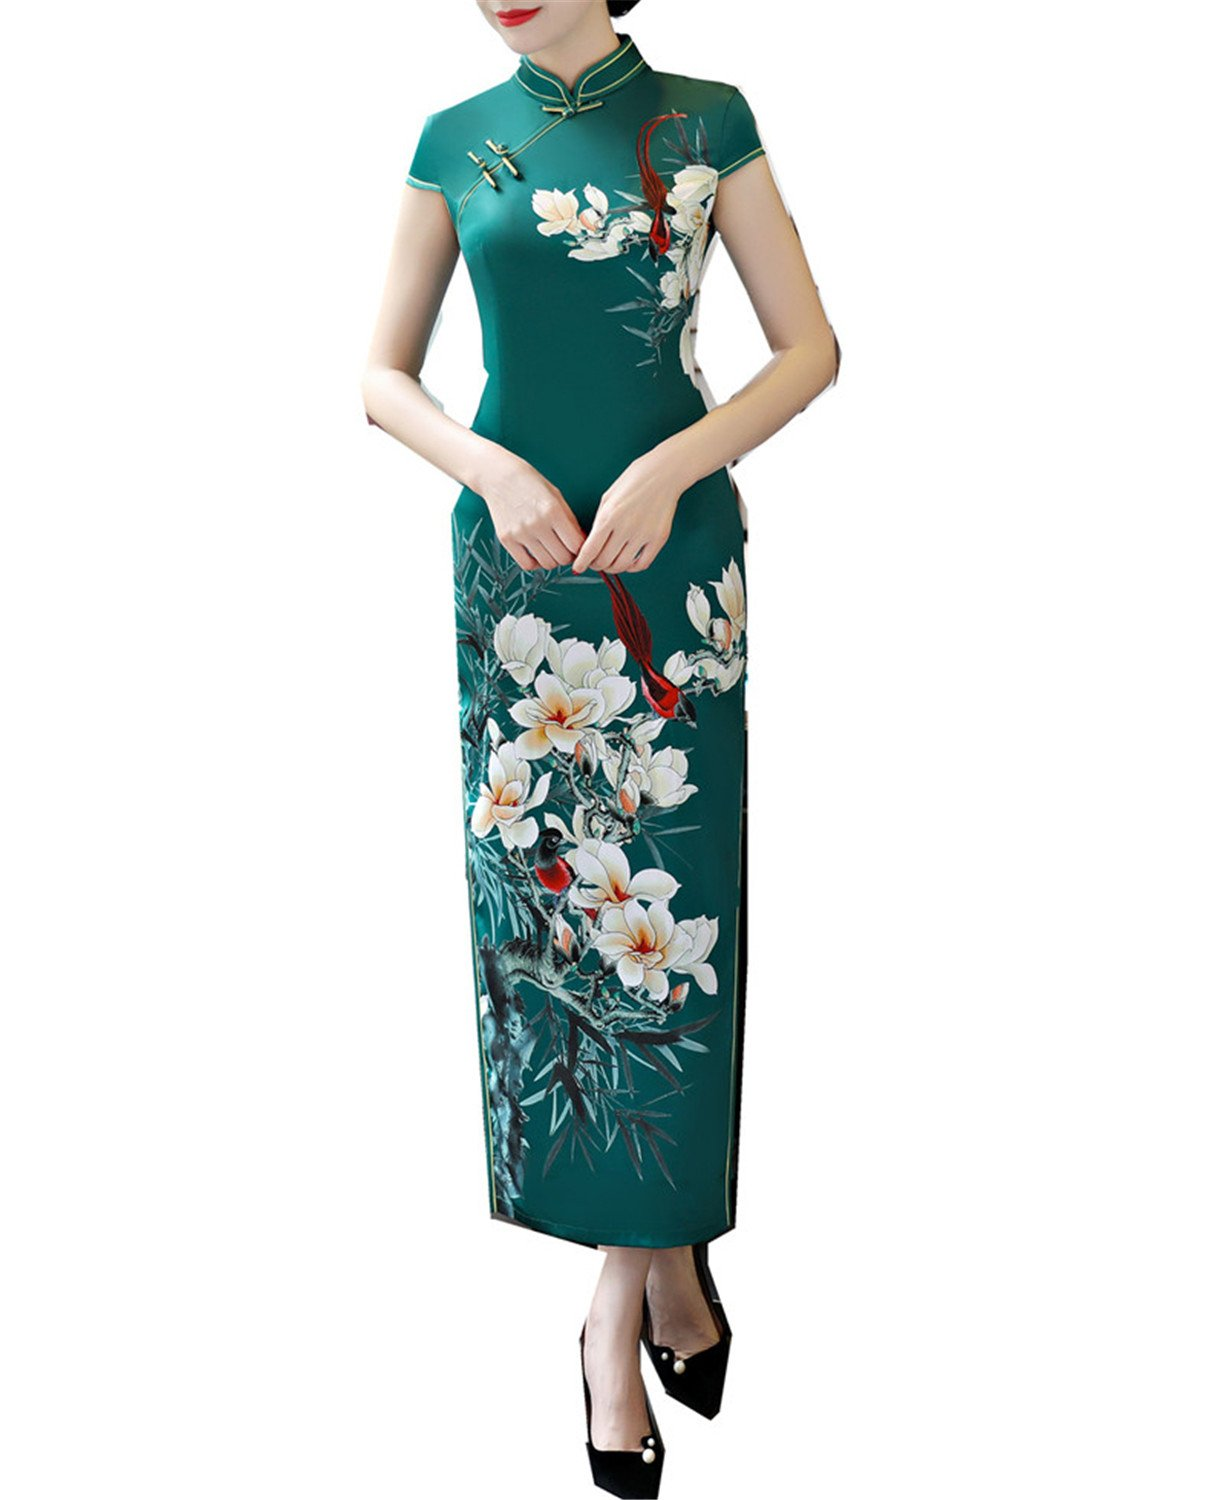 Coac3 Faux Silk Qipao Dress Long Cheongsam Dresses Short Sleeve Slim Traditional Chinese Dress for Woman Green L